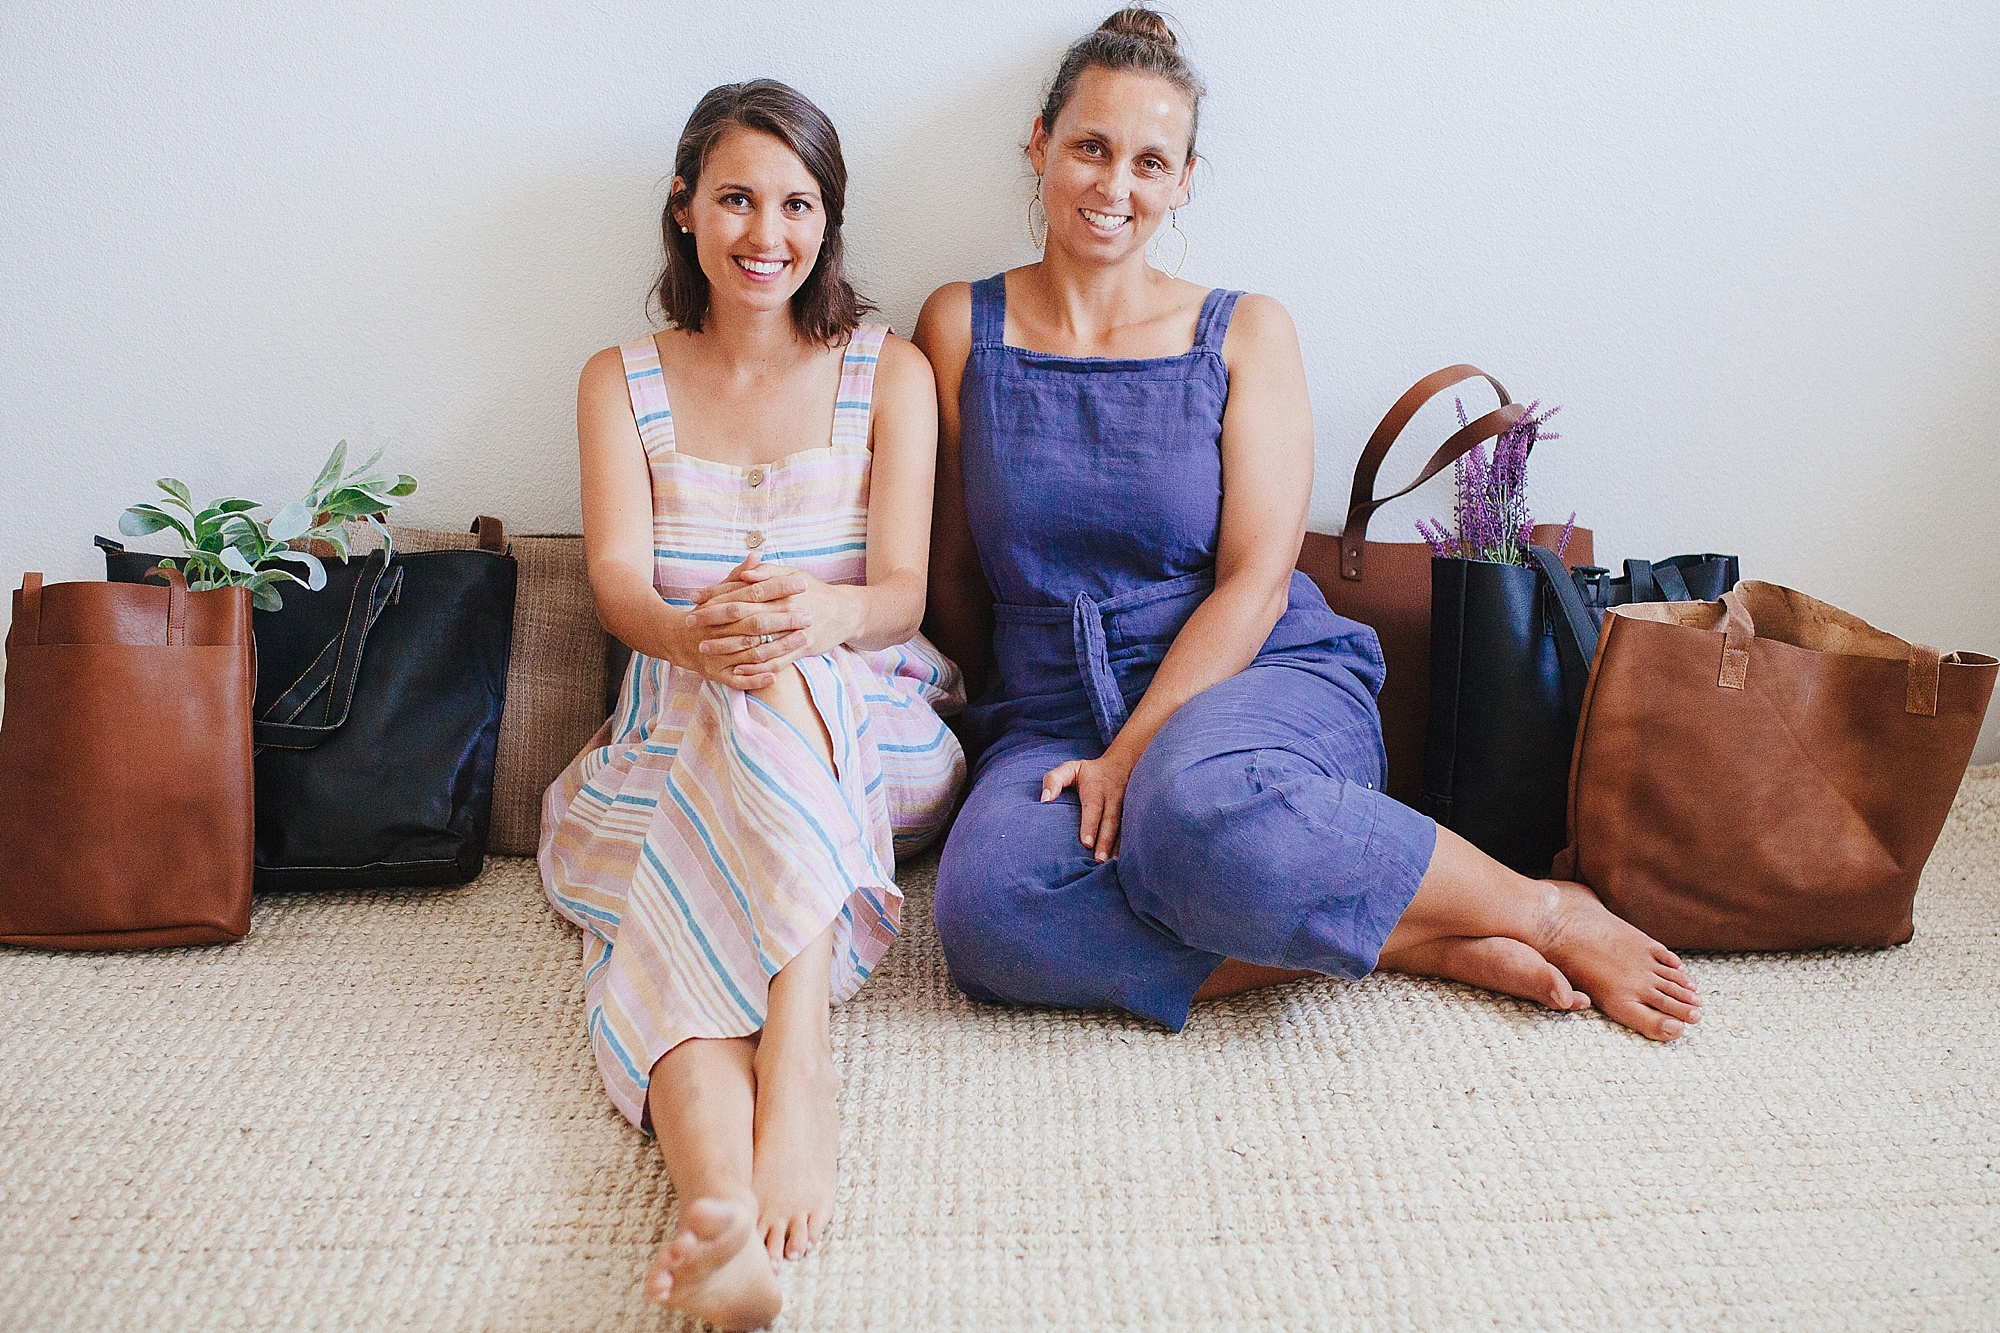 We are Katie and Kristi, sister-in-laws who have both lived in Nepal. We, along with our husbands, are excited to bring you a variety of leather goods handmade from Nepal. We love connecting with you, so please don't hesitate to contact us if you have any questions, suggestions, or comments! Thanks for supporting Lottie Leather.